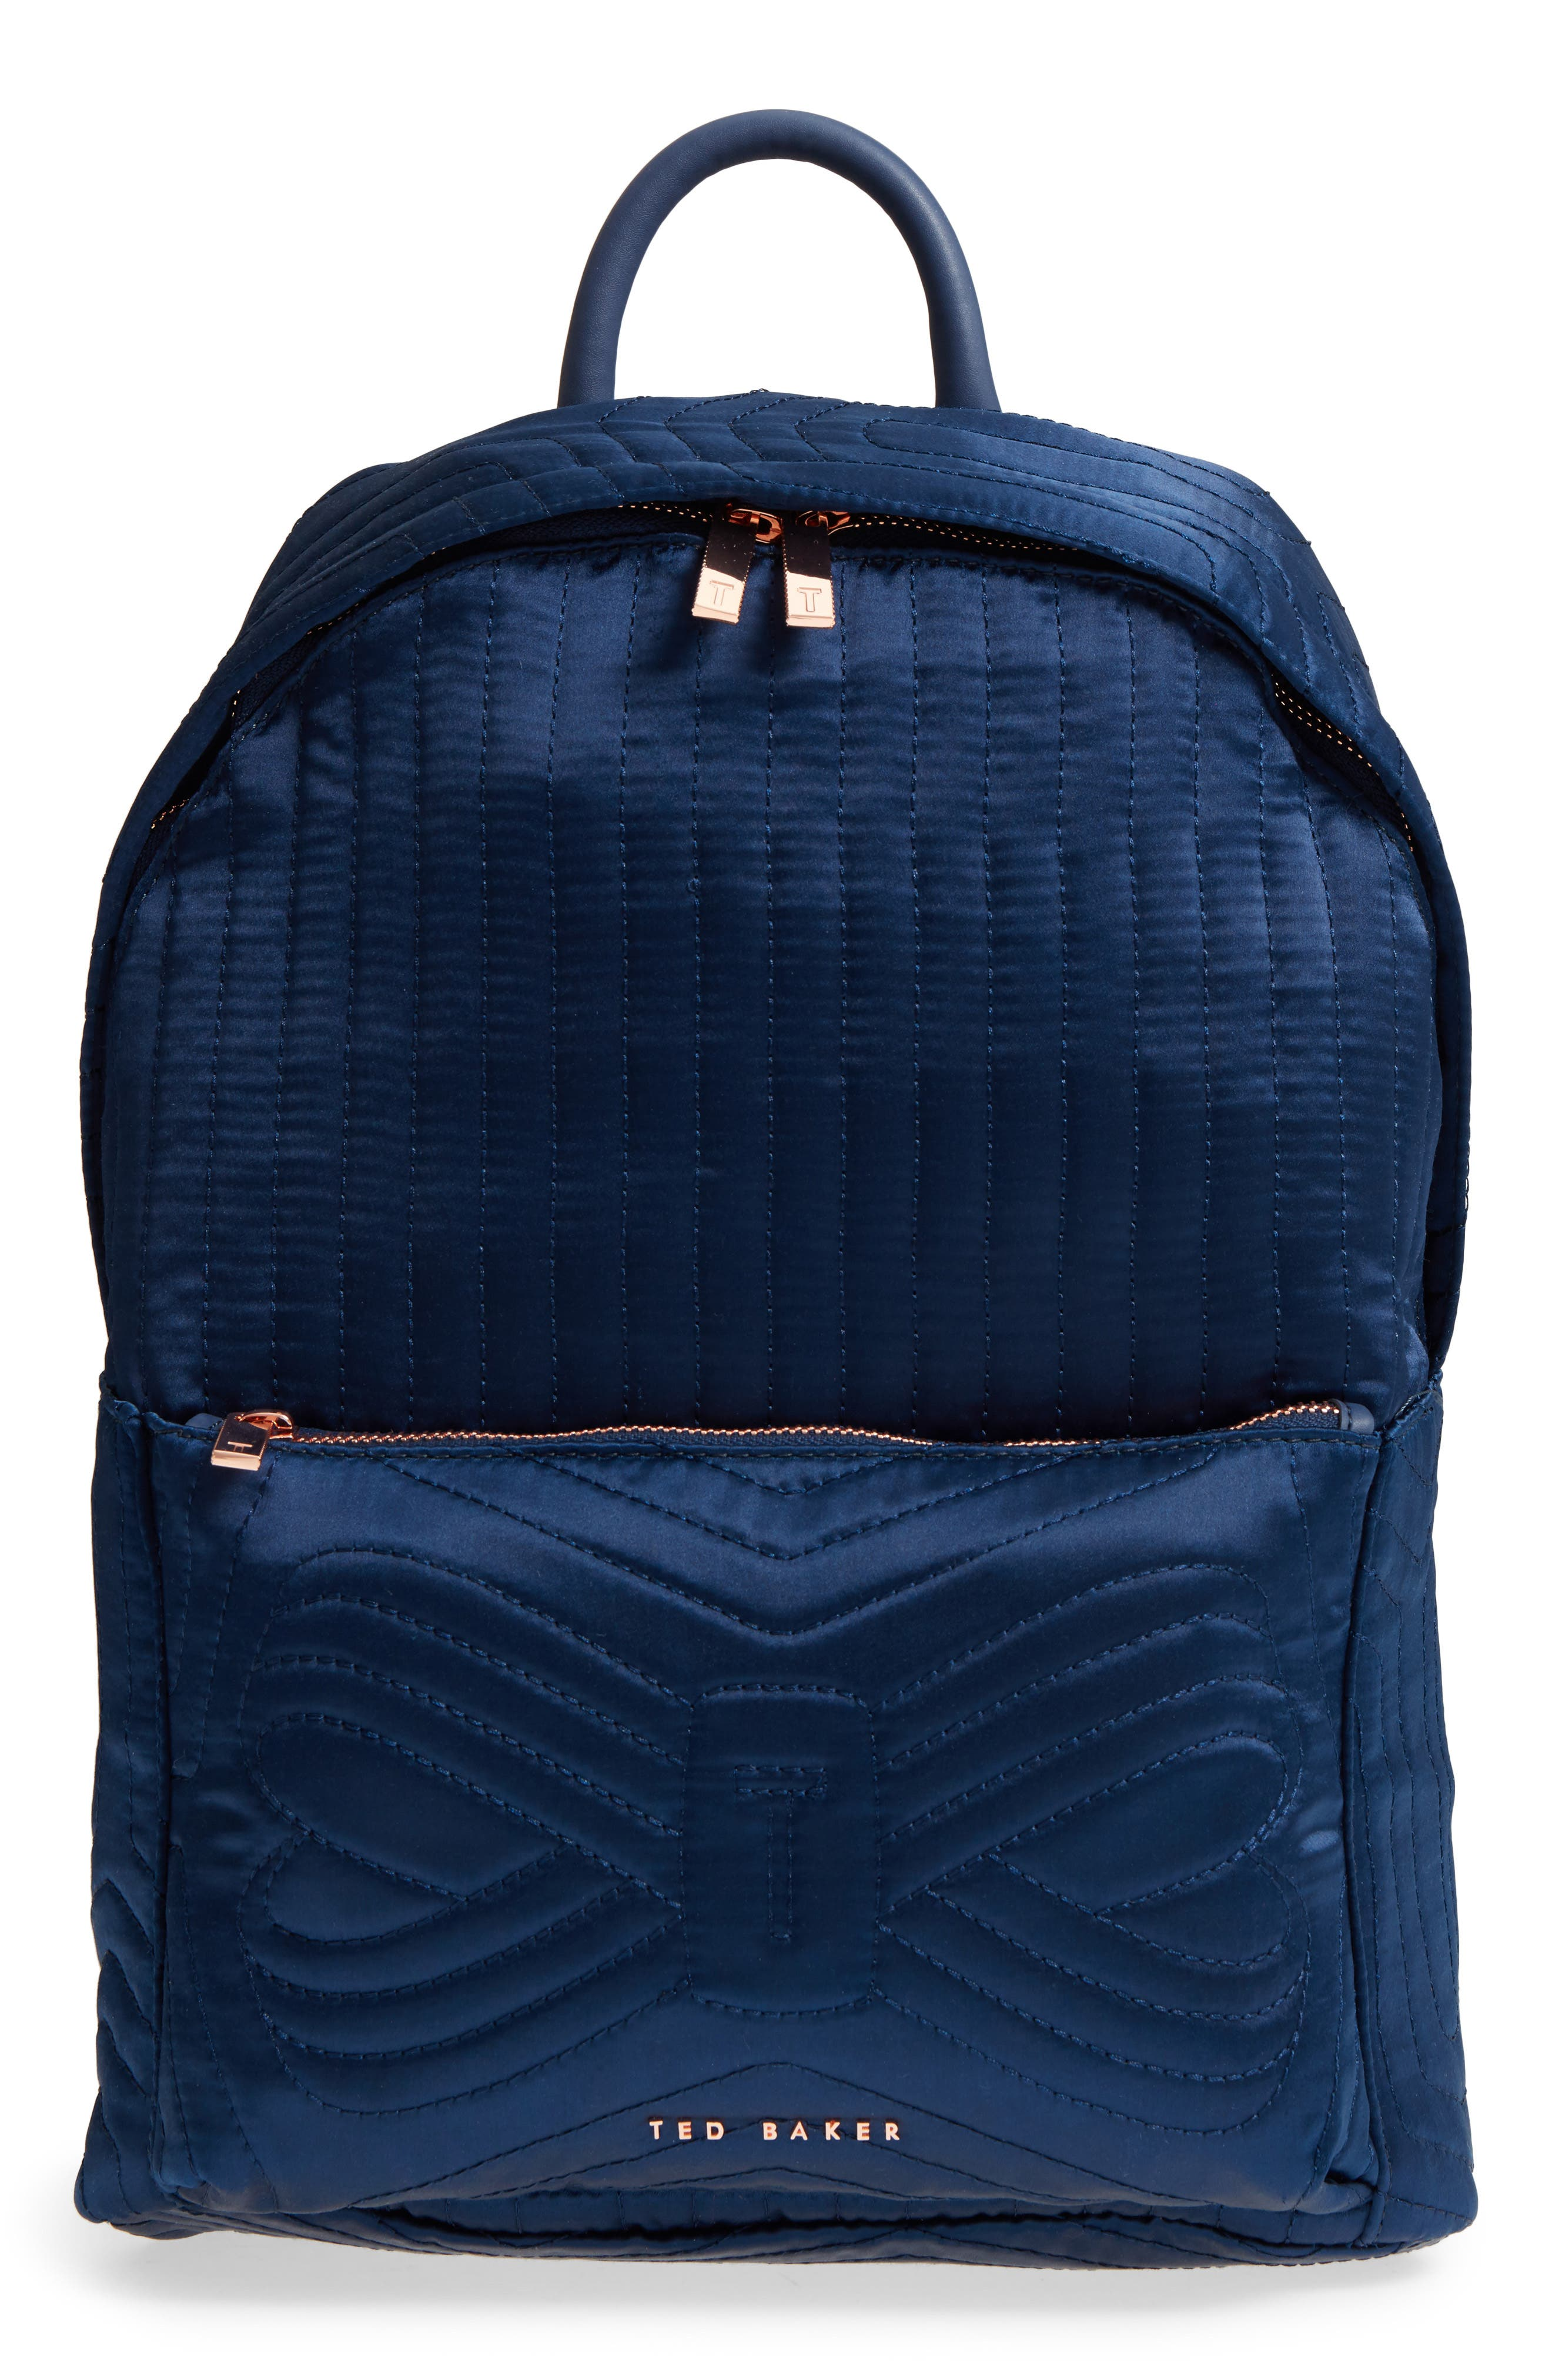 Akija Quilted Bow Backpack,                             Main thumbnail 1, color,                             Navy